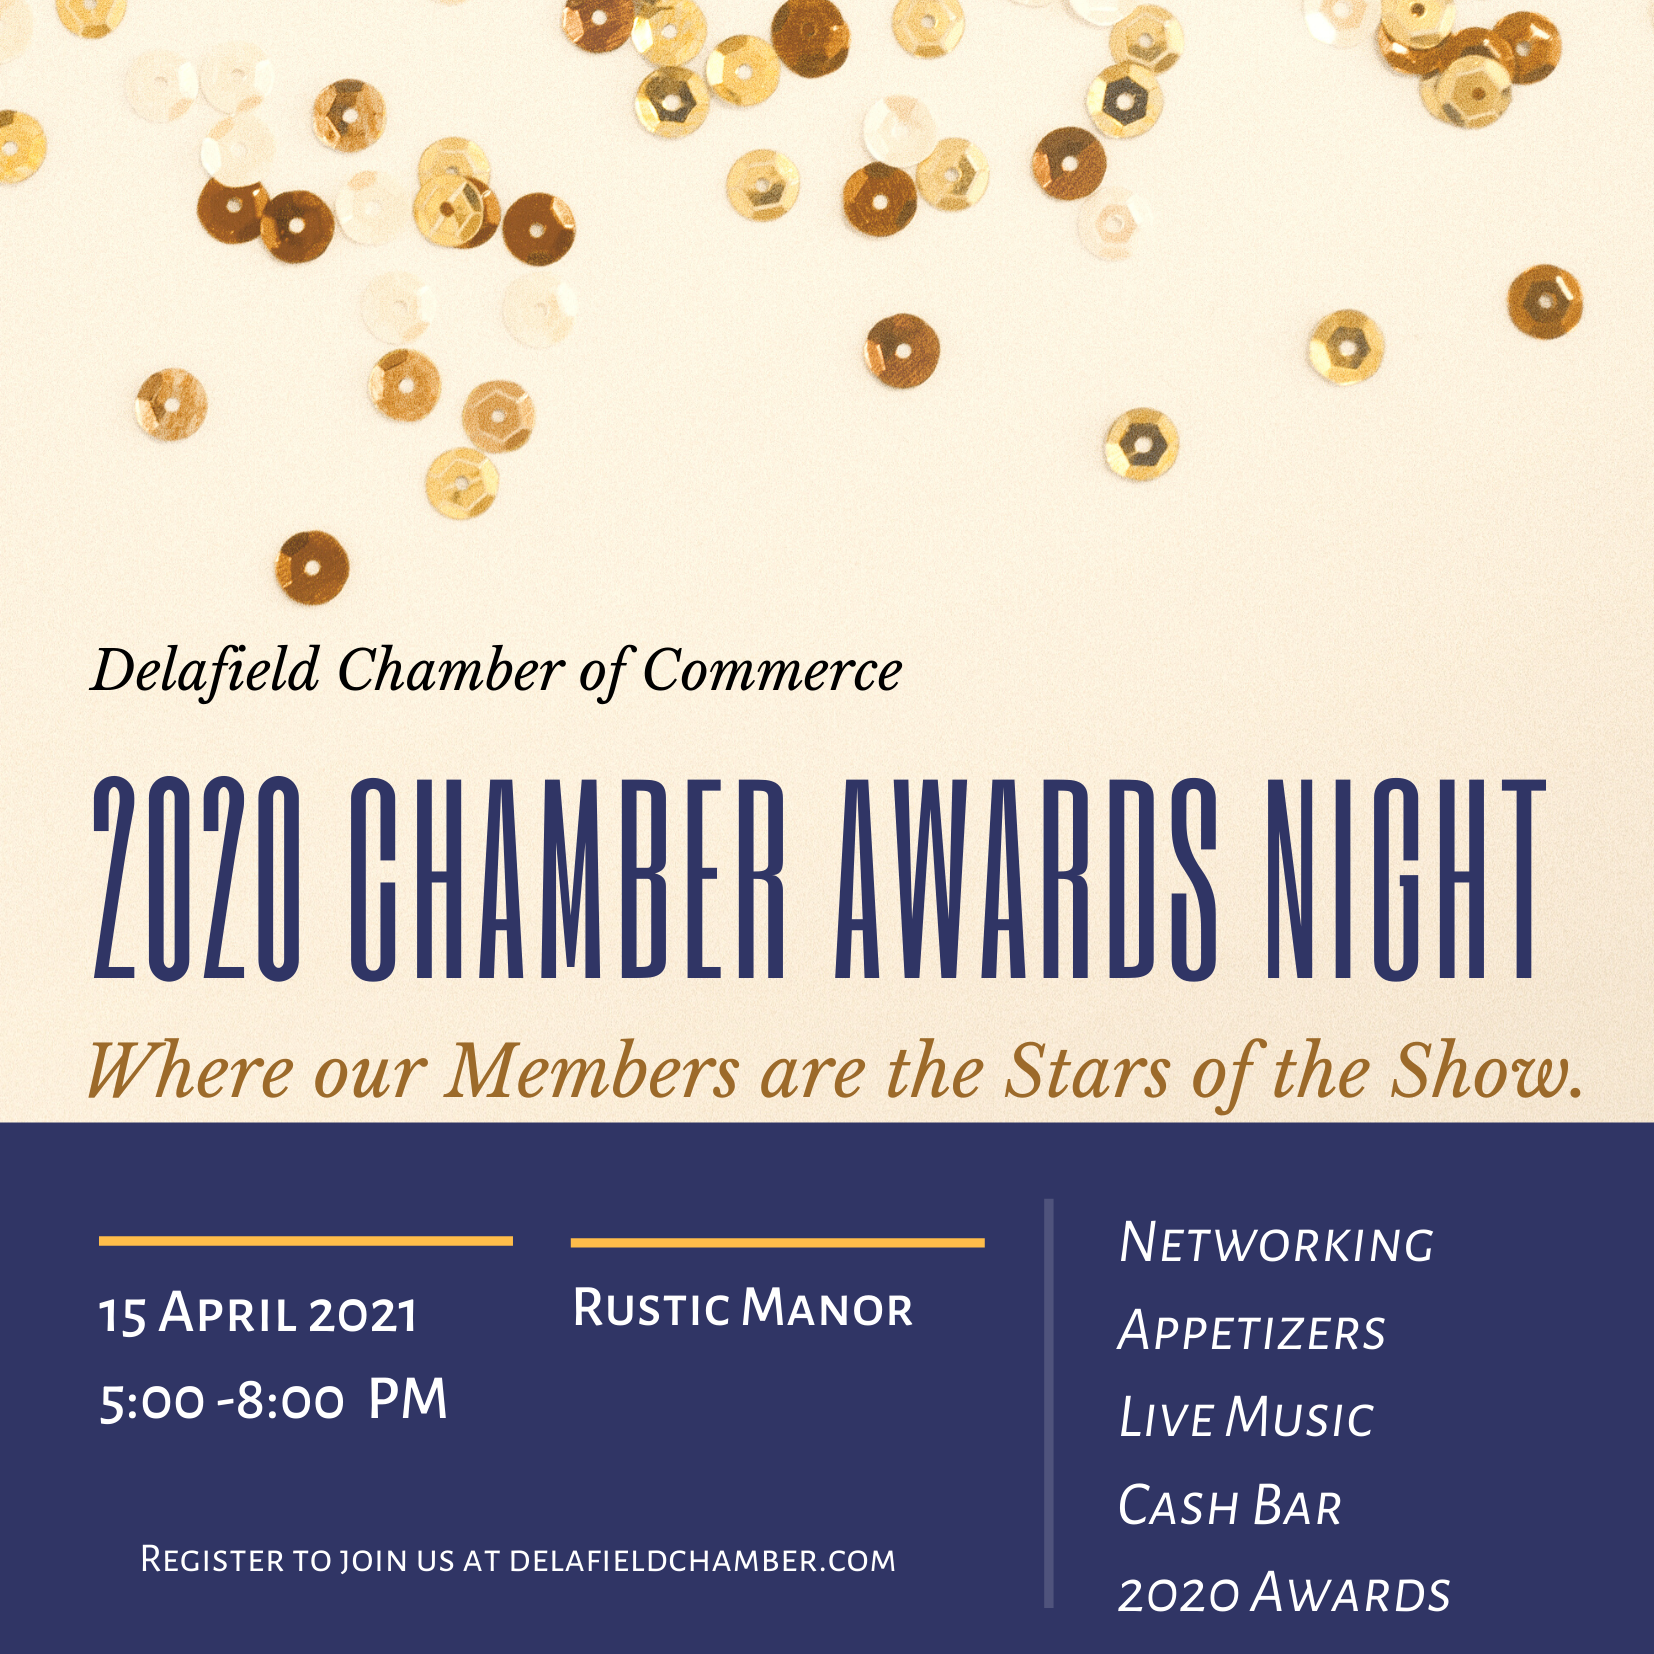 Delafield-Chamber-of-Commerce.png